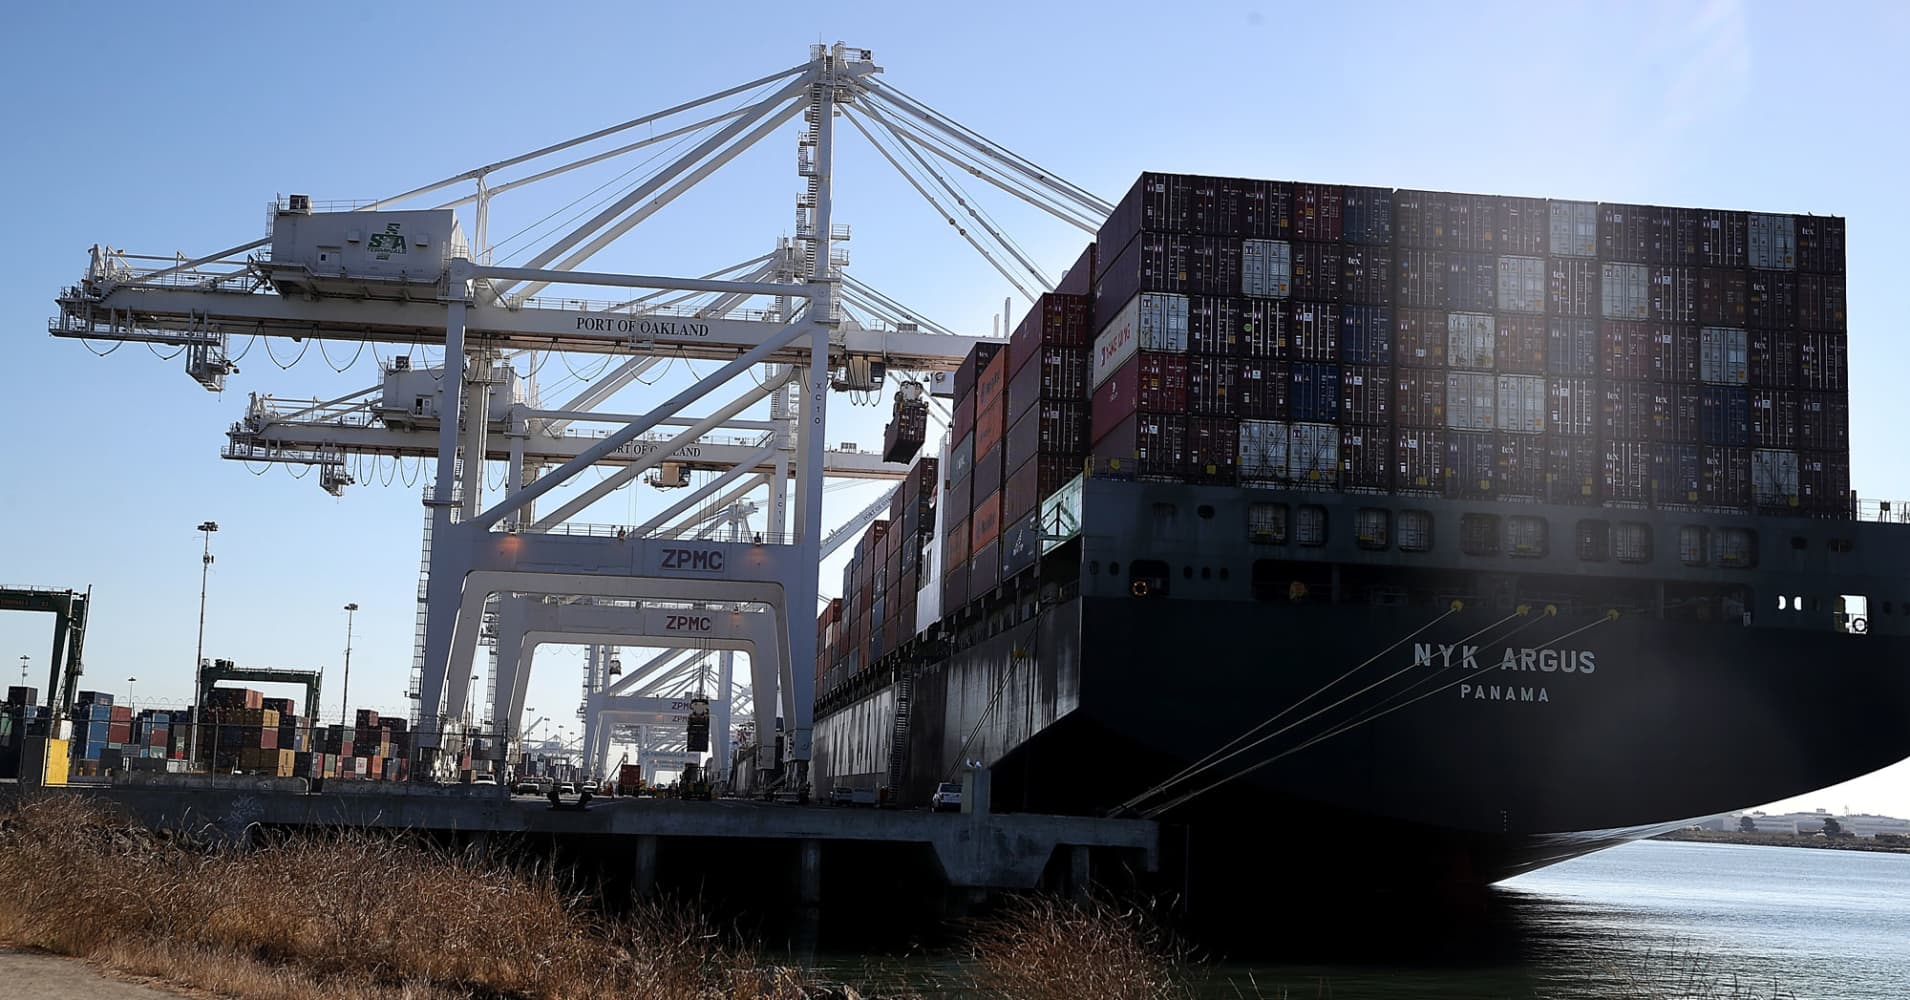 A container ship at the Port of Oakland in Oakland, California.